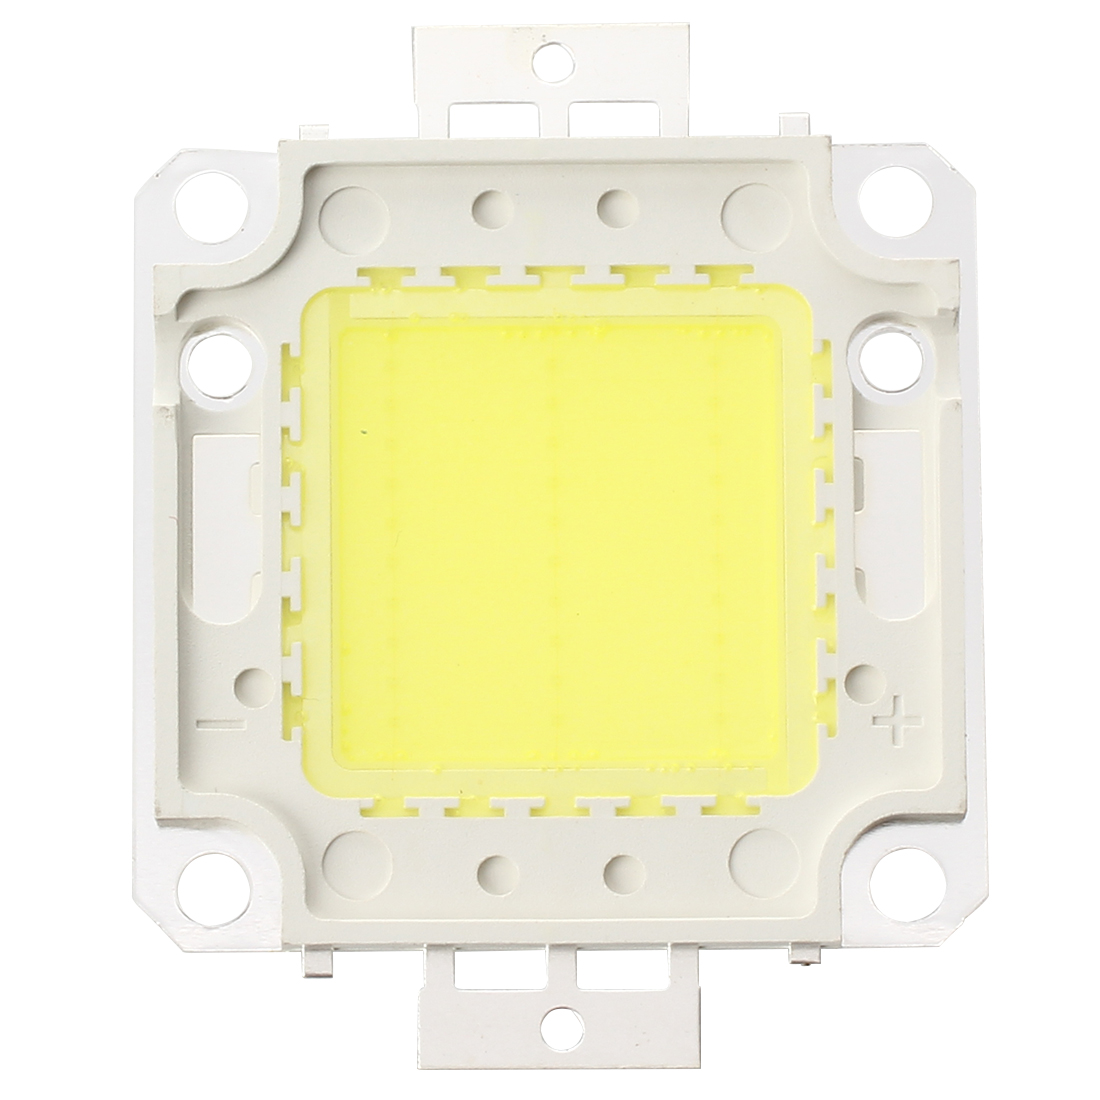 High Power 30W LED Chip Bulb Light Lamp DIY White 2200lm 6500K Dropshipping